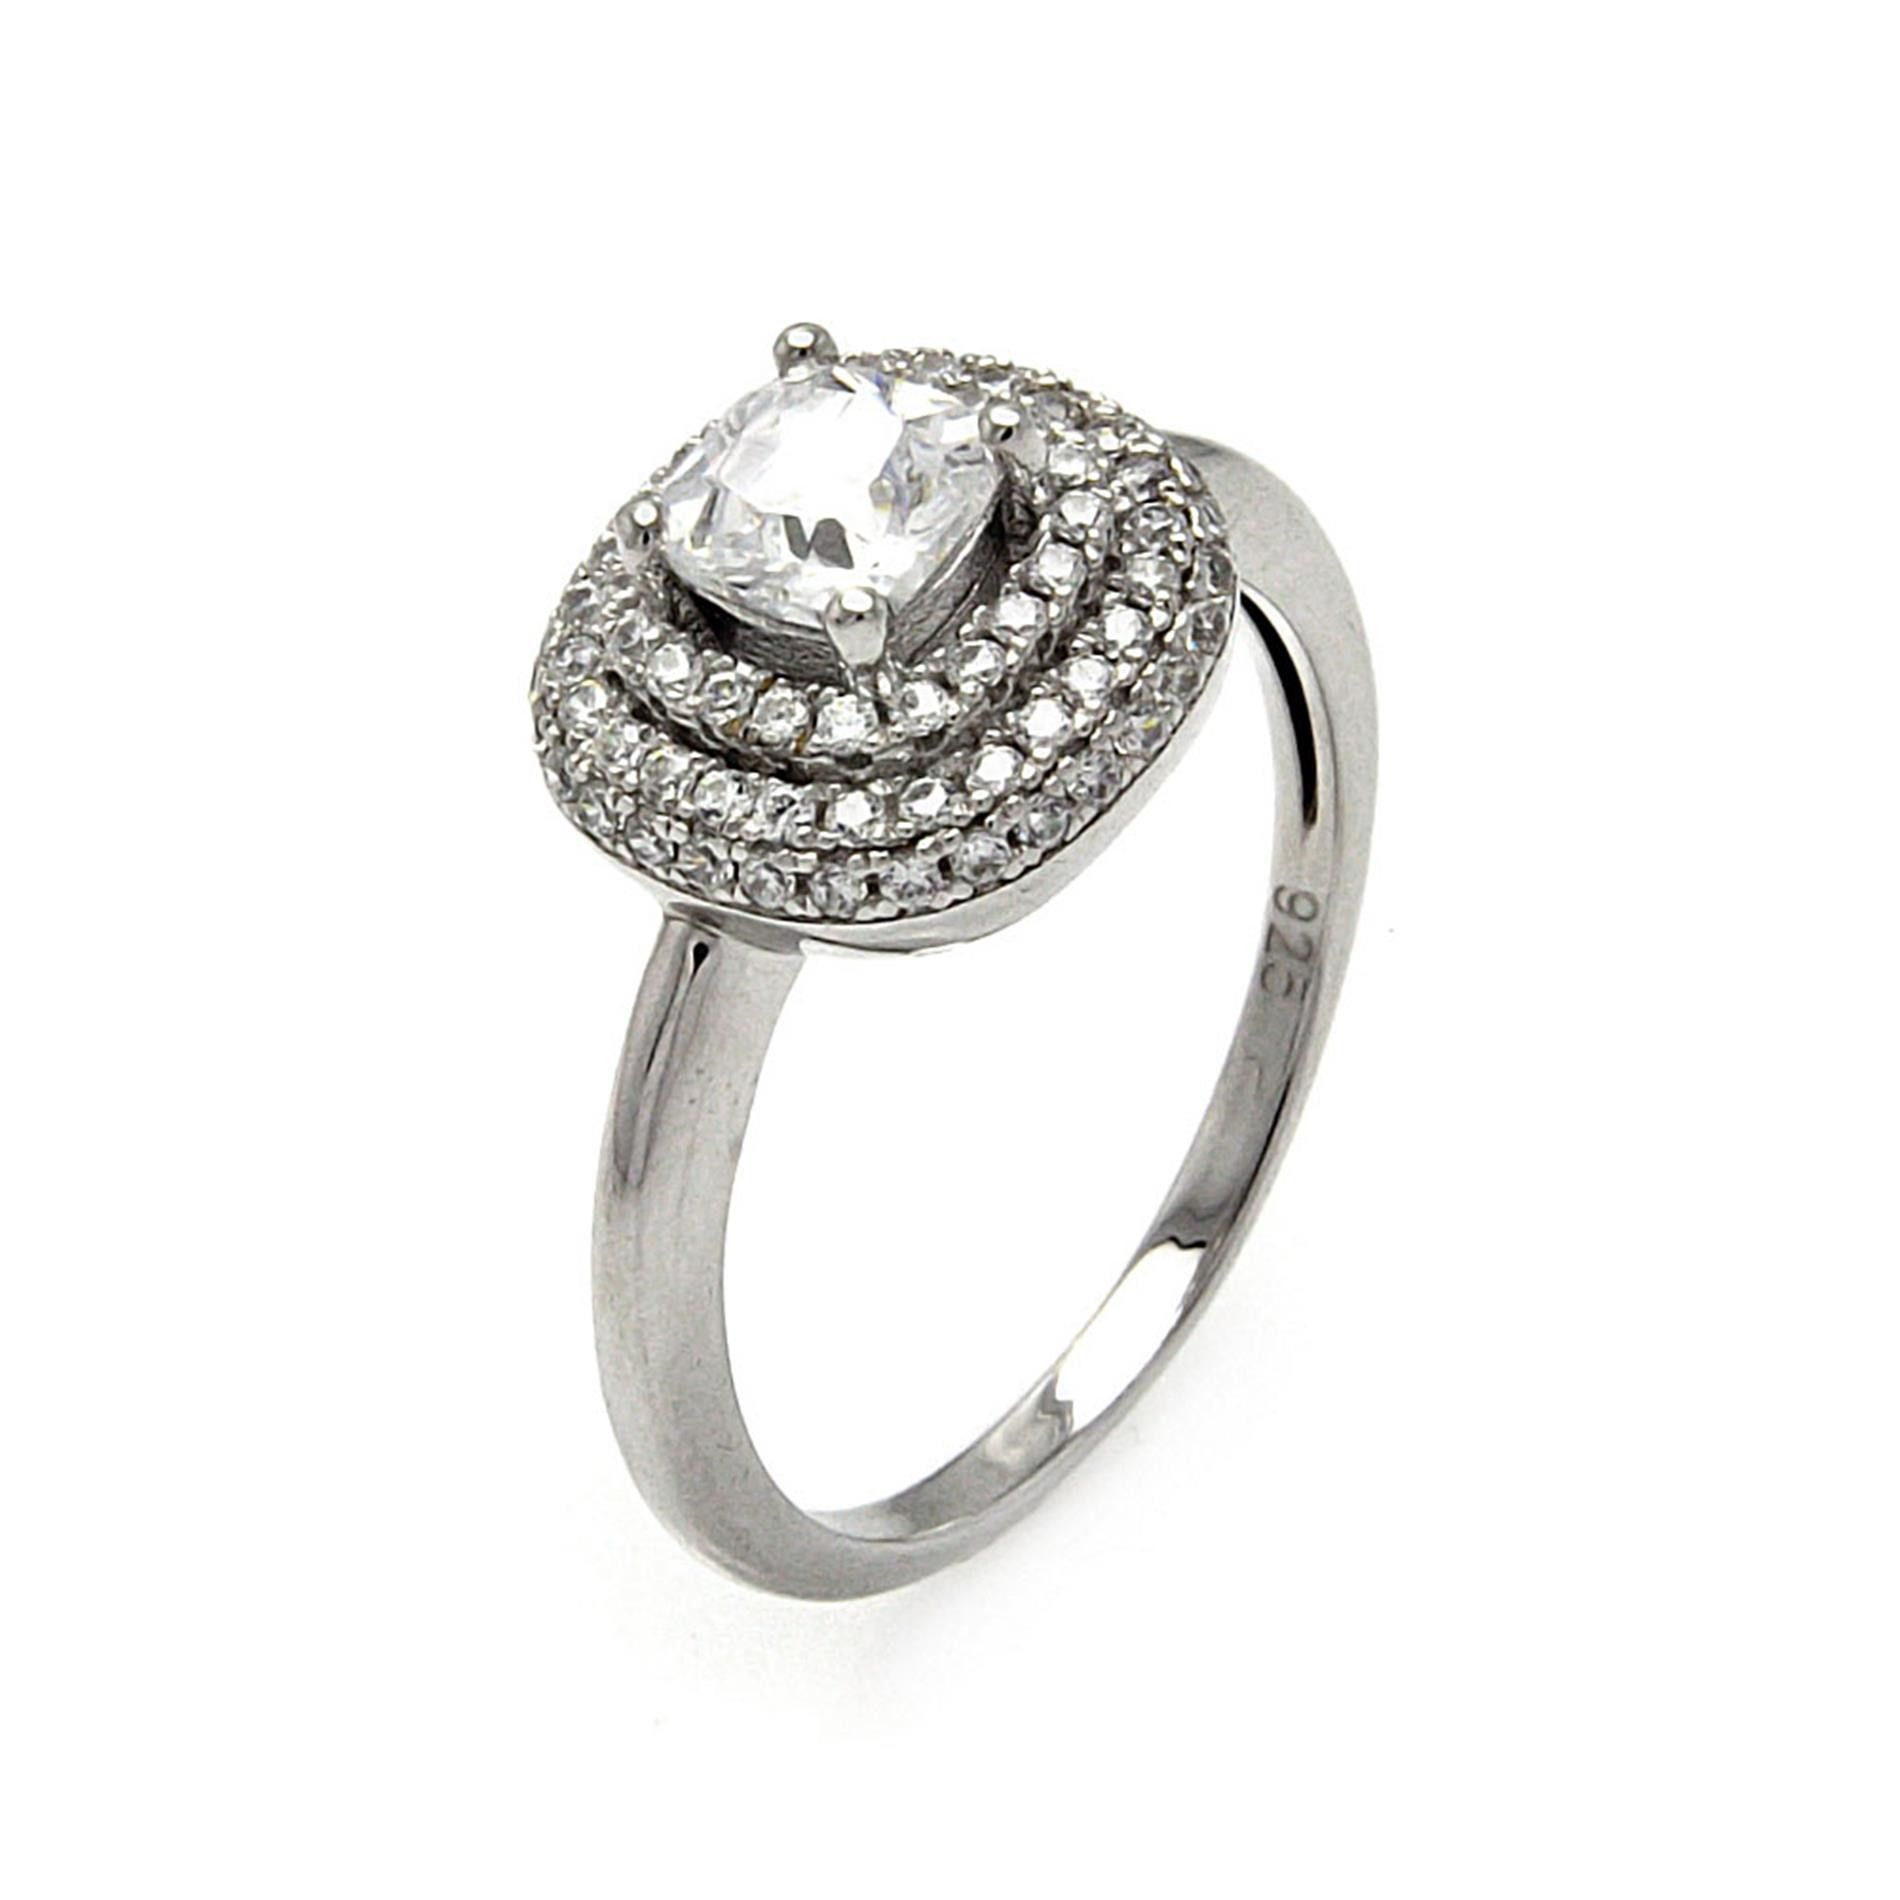 Stainless Steel Prong-Set Round Sirena Bypass Fancy Ring with Clear CZ